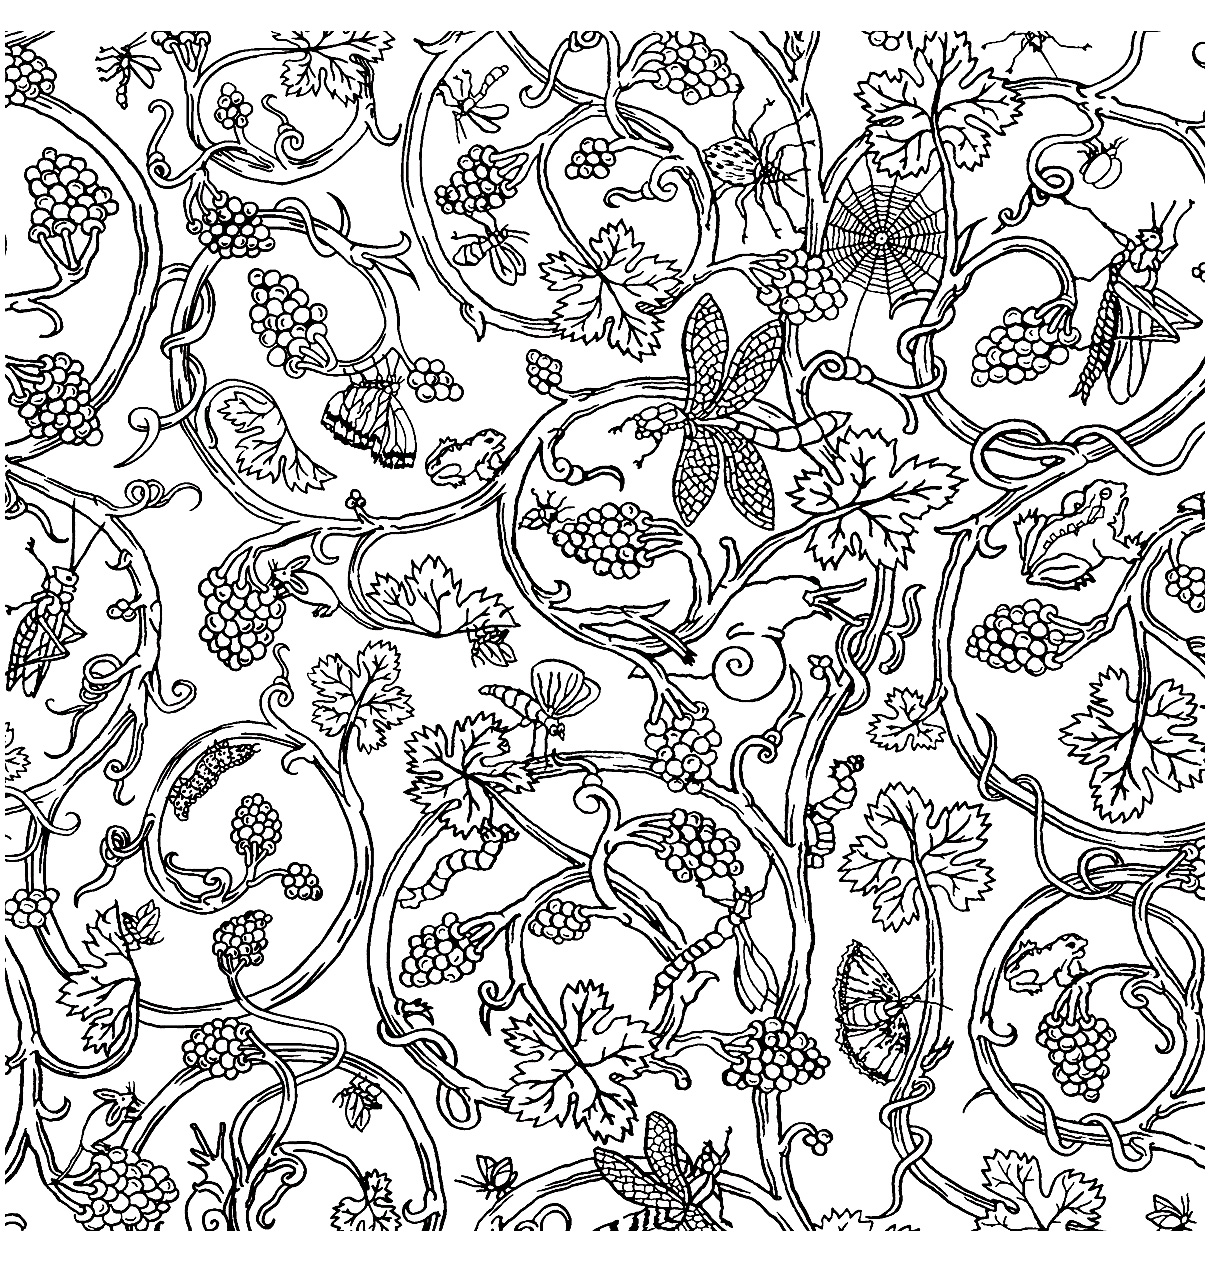 Patterns Inspired By Vintage Tapestry With Several Insects Hidden In The Branches And Foliage